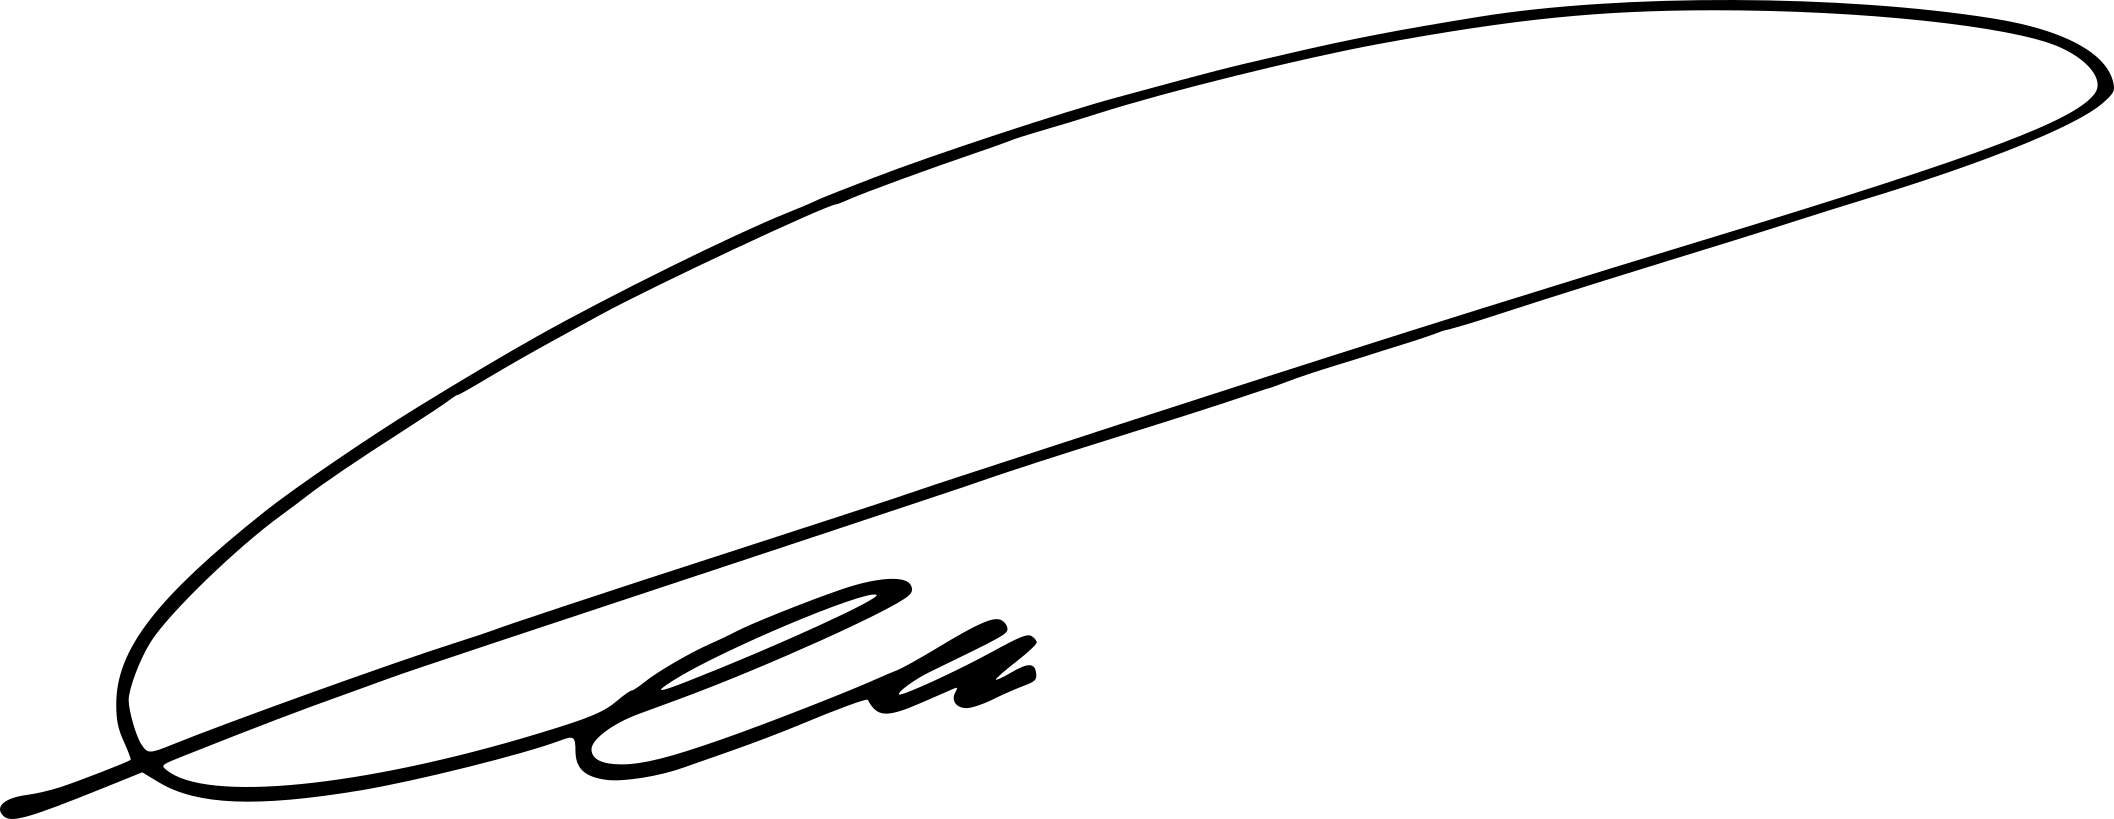 파일:Signature_of_IU.png